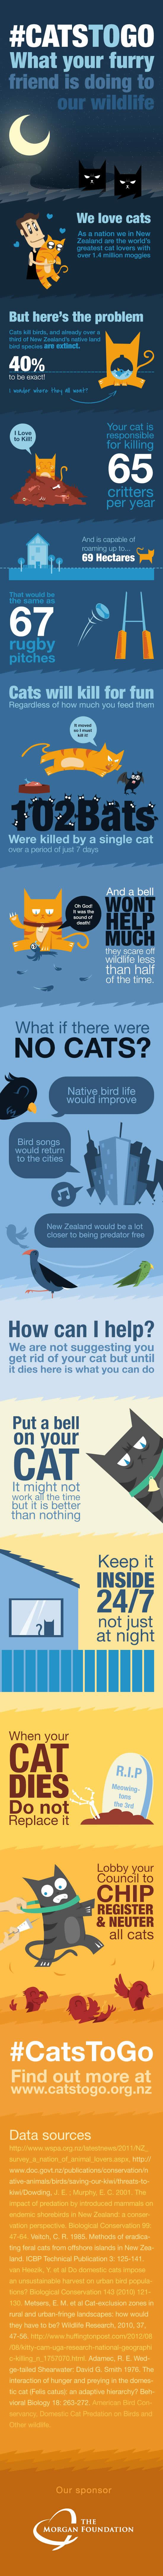 Me-no-w! New Zealand Man Wants to Ban Cats